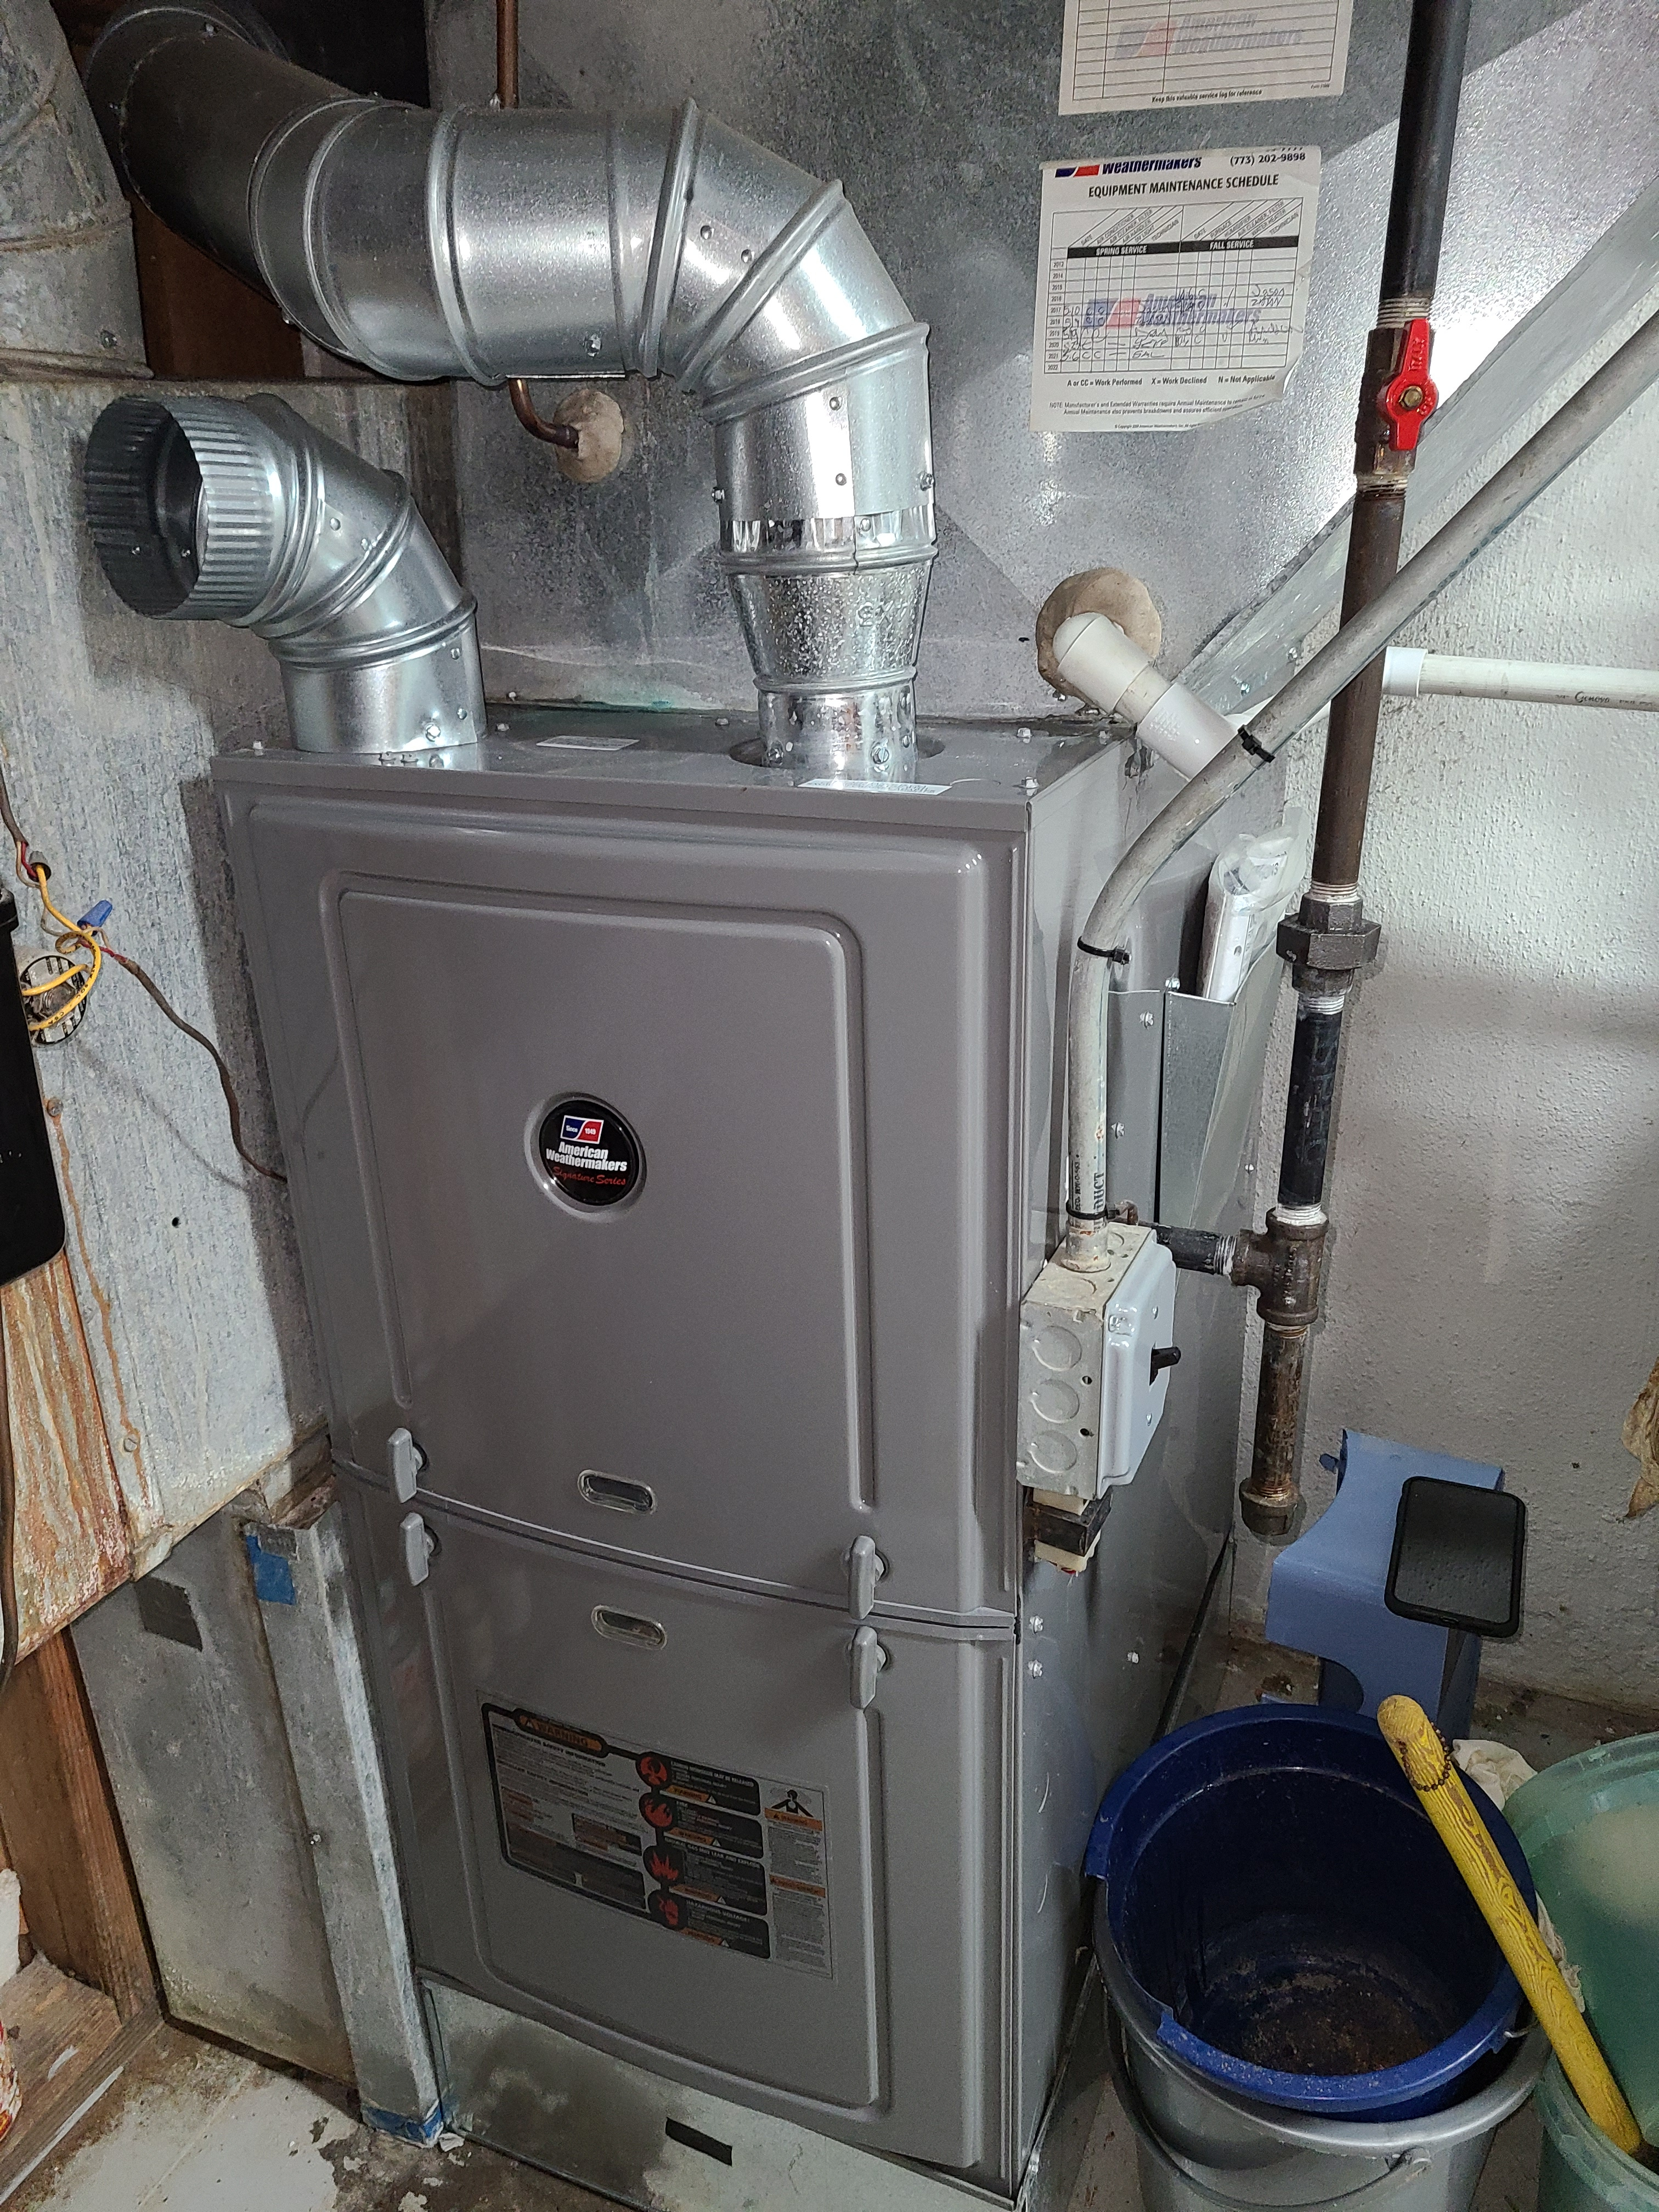 Photo of Rheem furnace after performing CTS